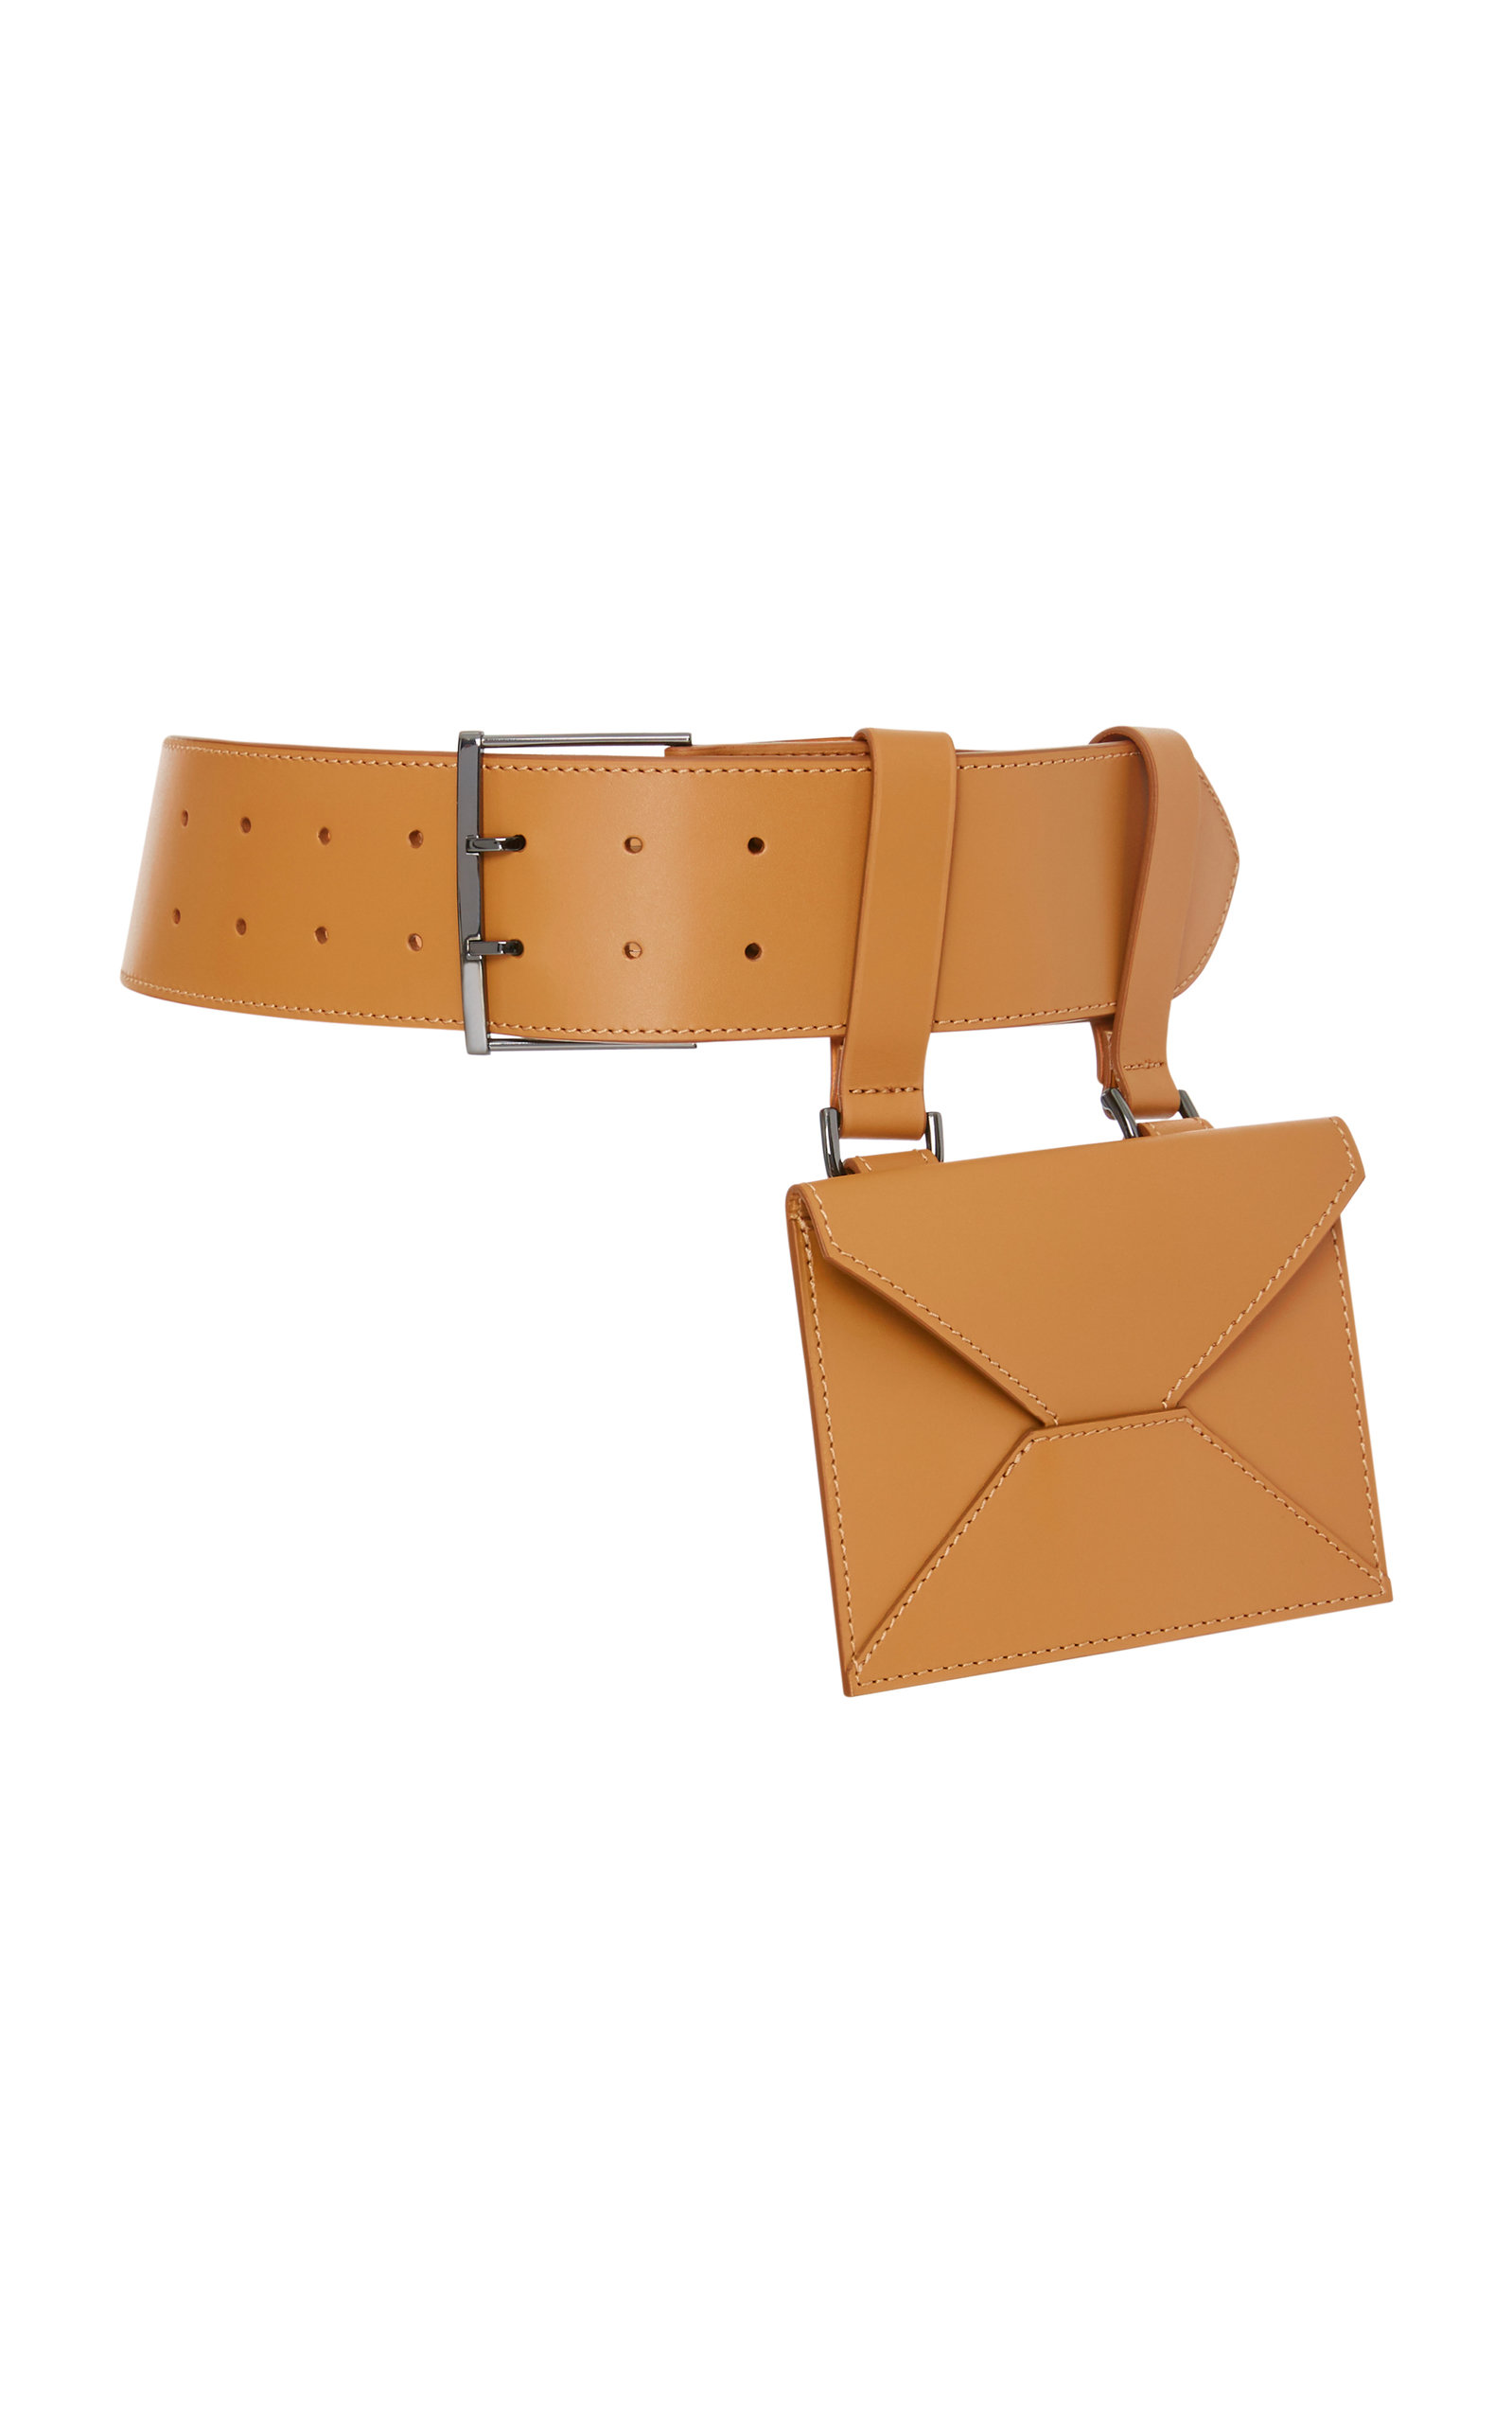 MAISON VAINCOURT M'O Exclusive Leather Belt Bag in Brown